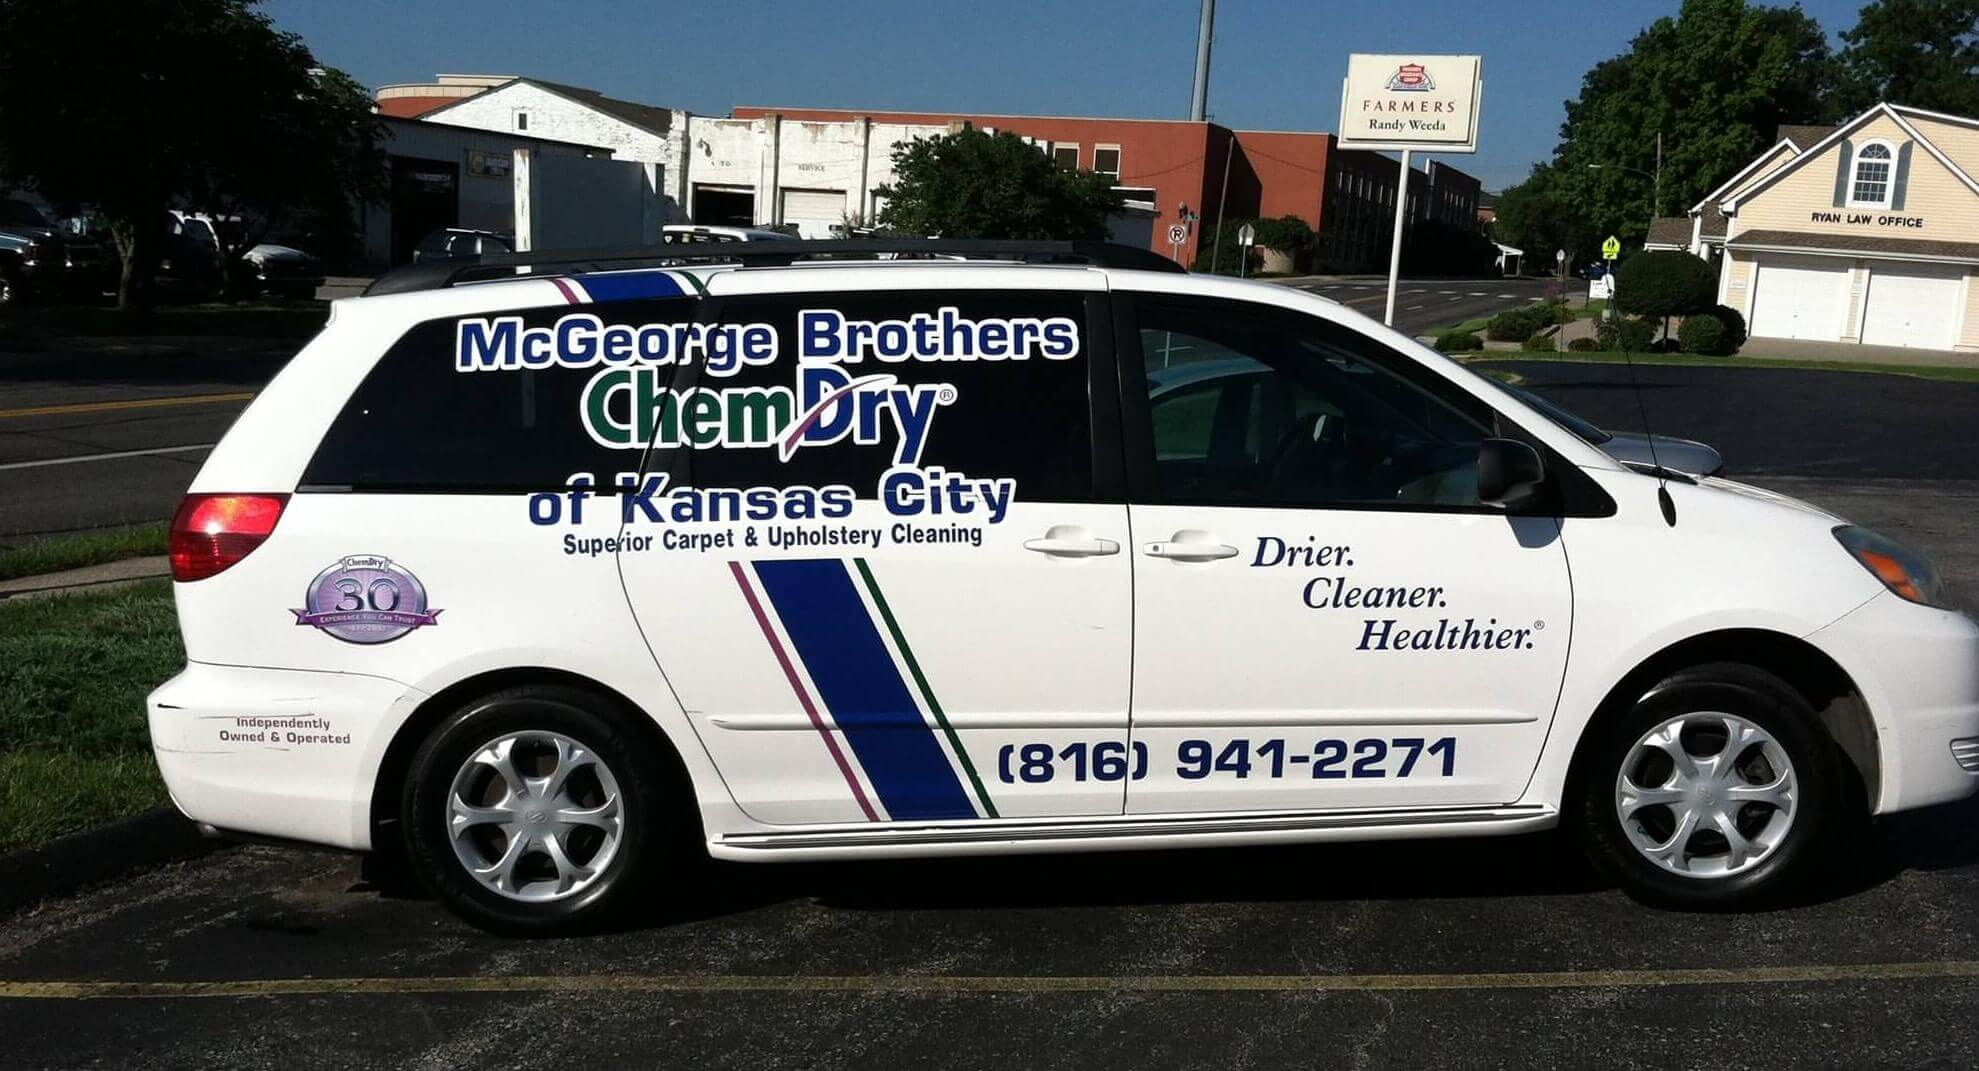 Carpet Cleaning In Kansas City Mcgeorge Brothers Chem